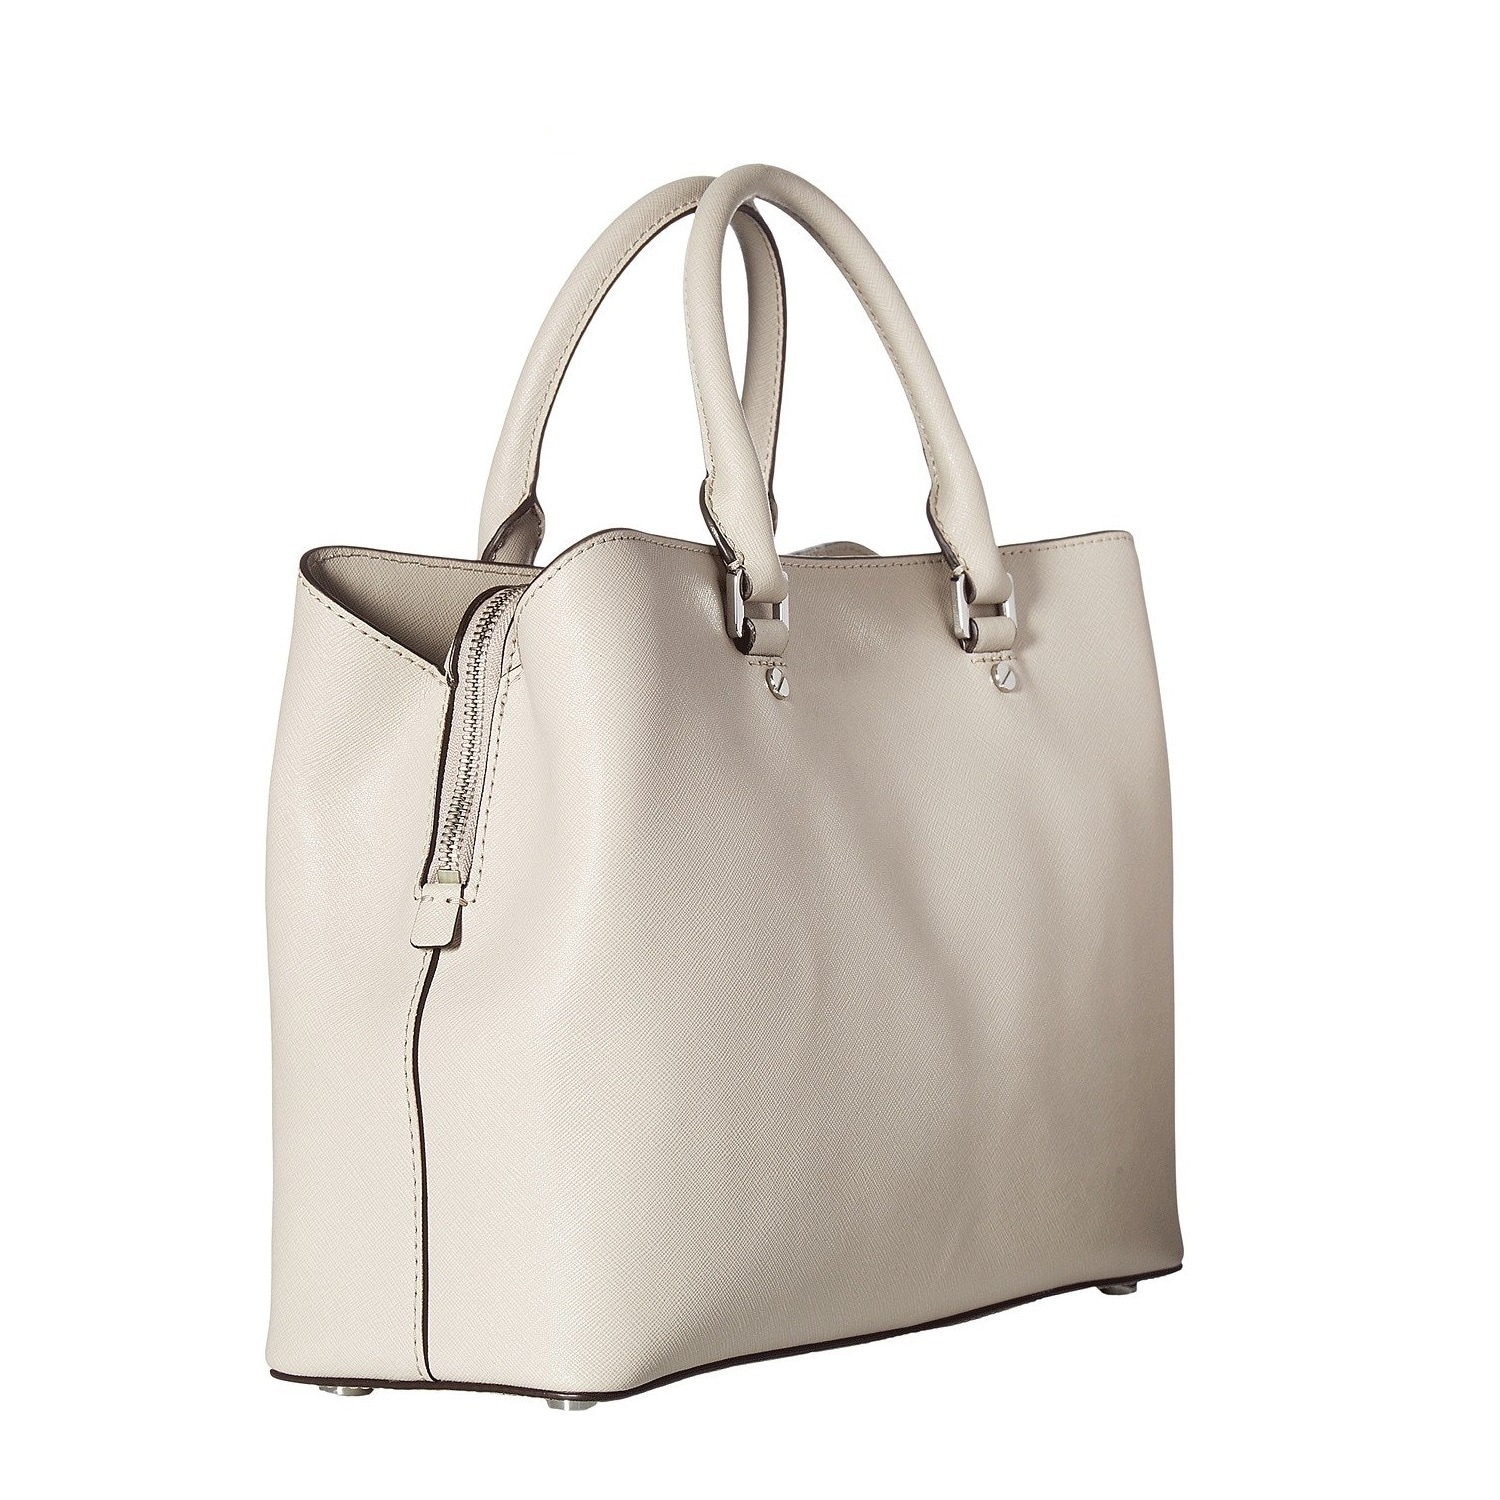 8943403b4217 Shop Michael Kors Savannah Large Pearl Grey Leather Satchel Handbag - Free  Shipping Today - Overstock - 19398798